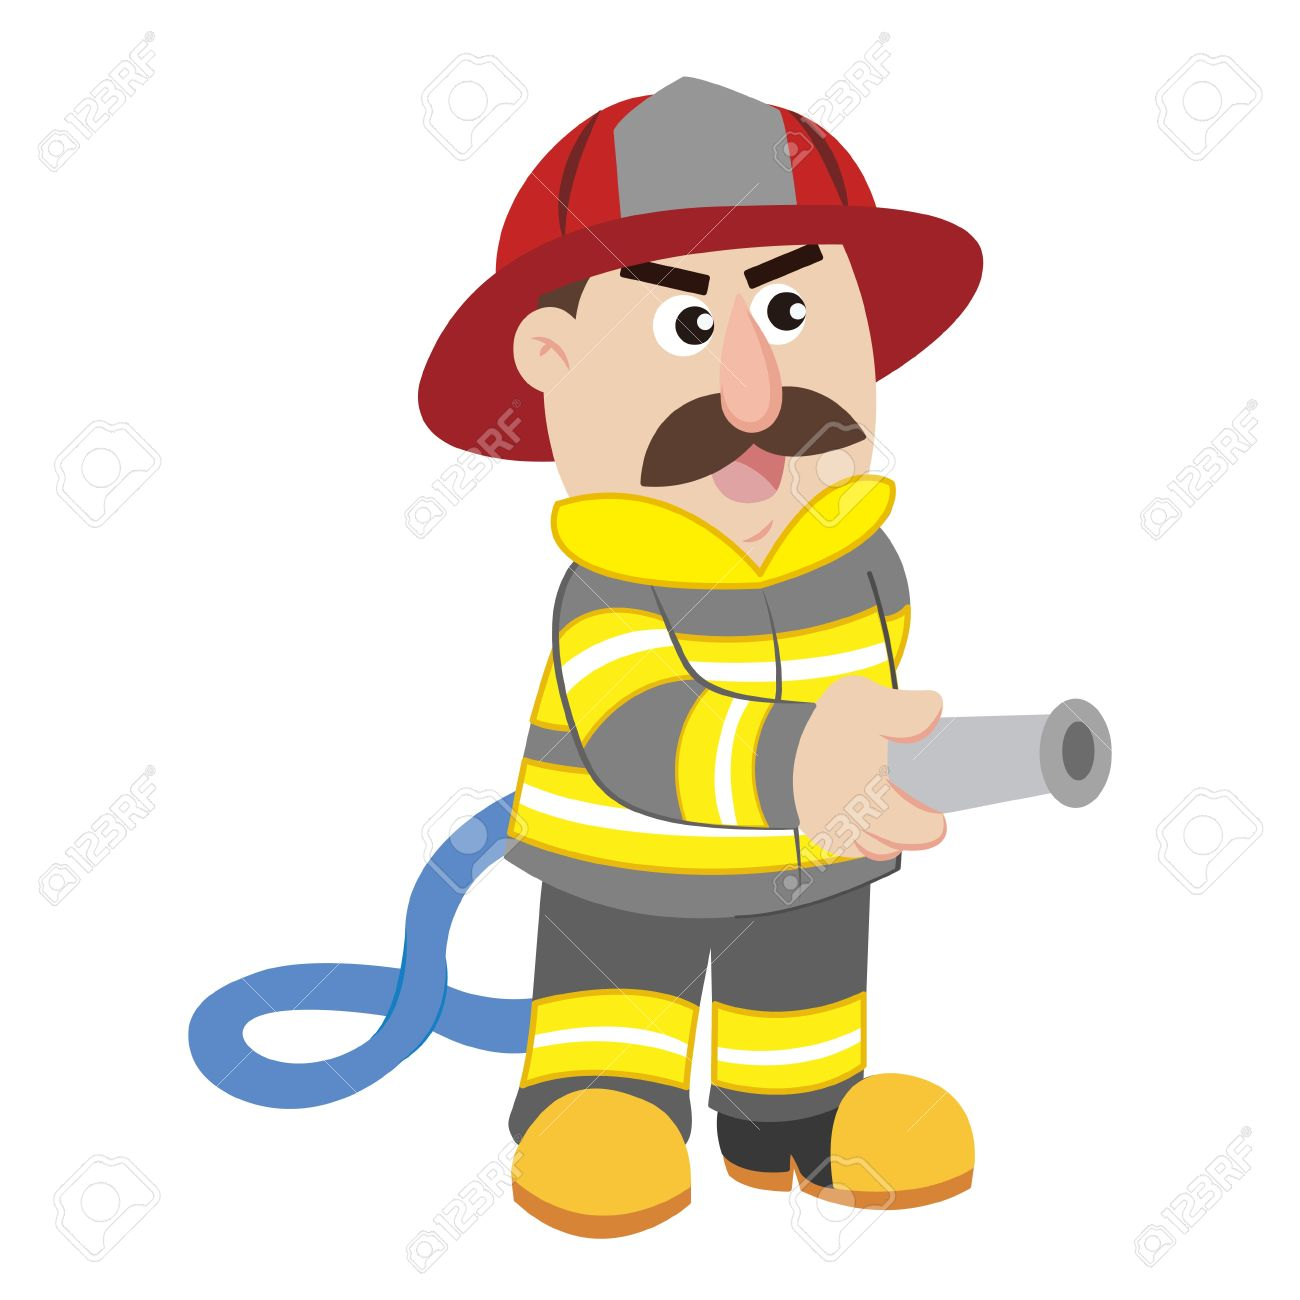 an illustration of cartoon fireman.